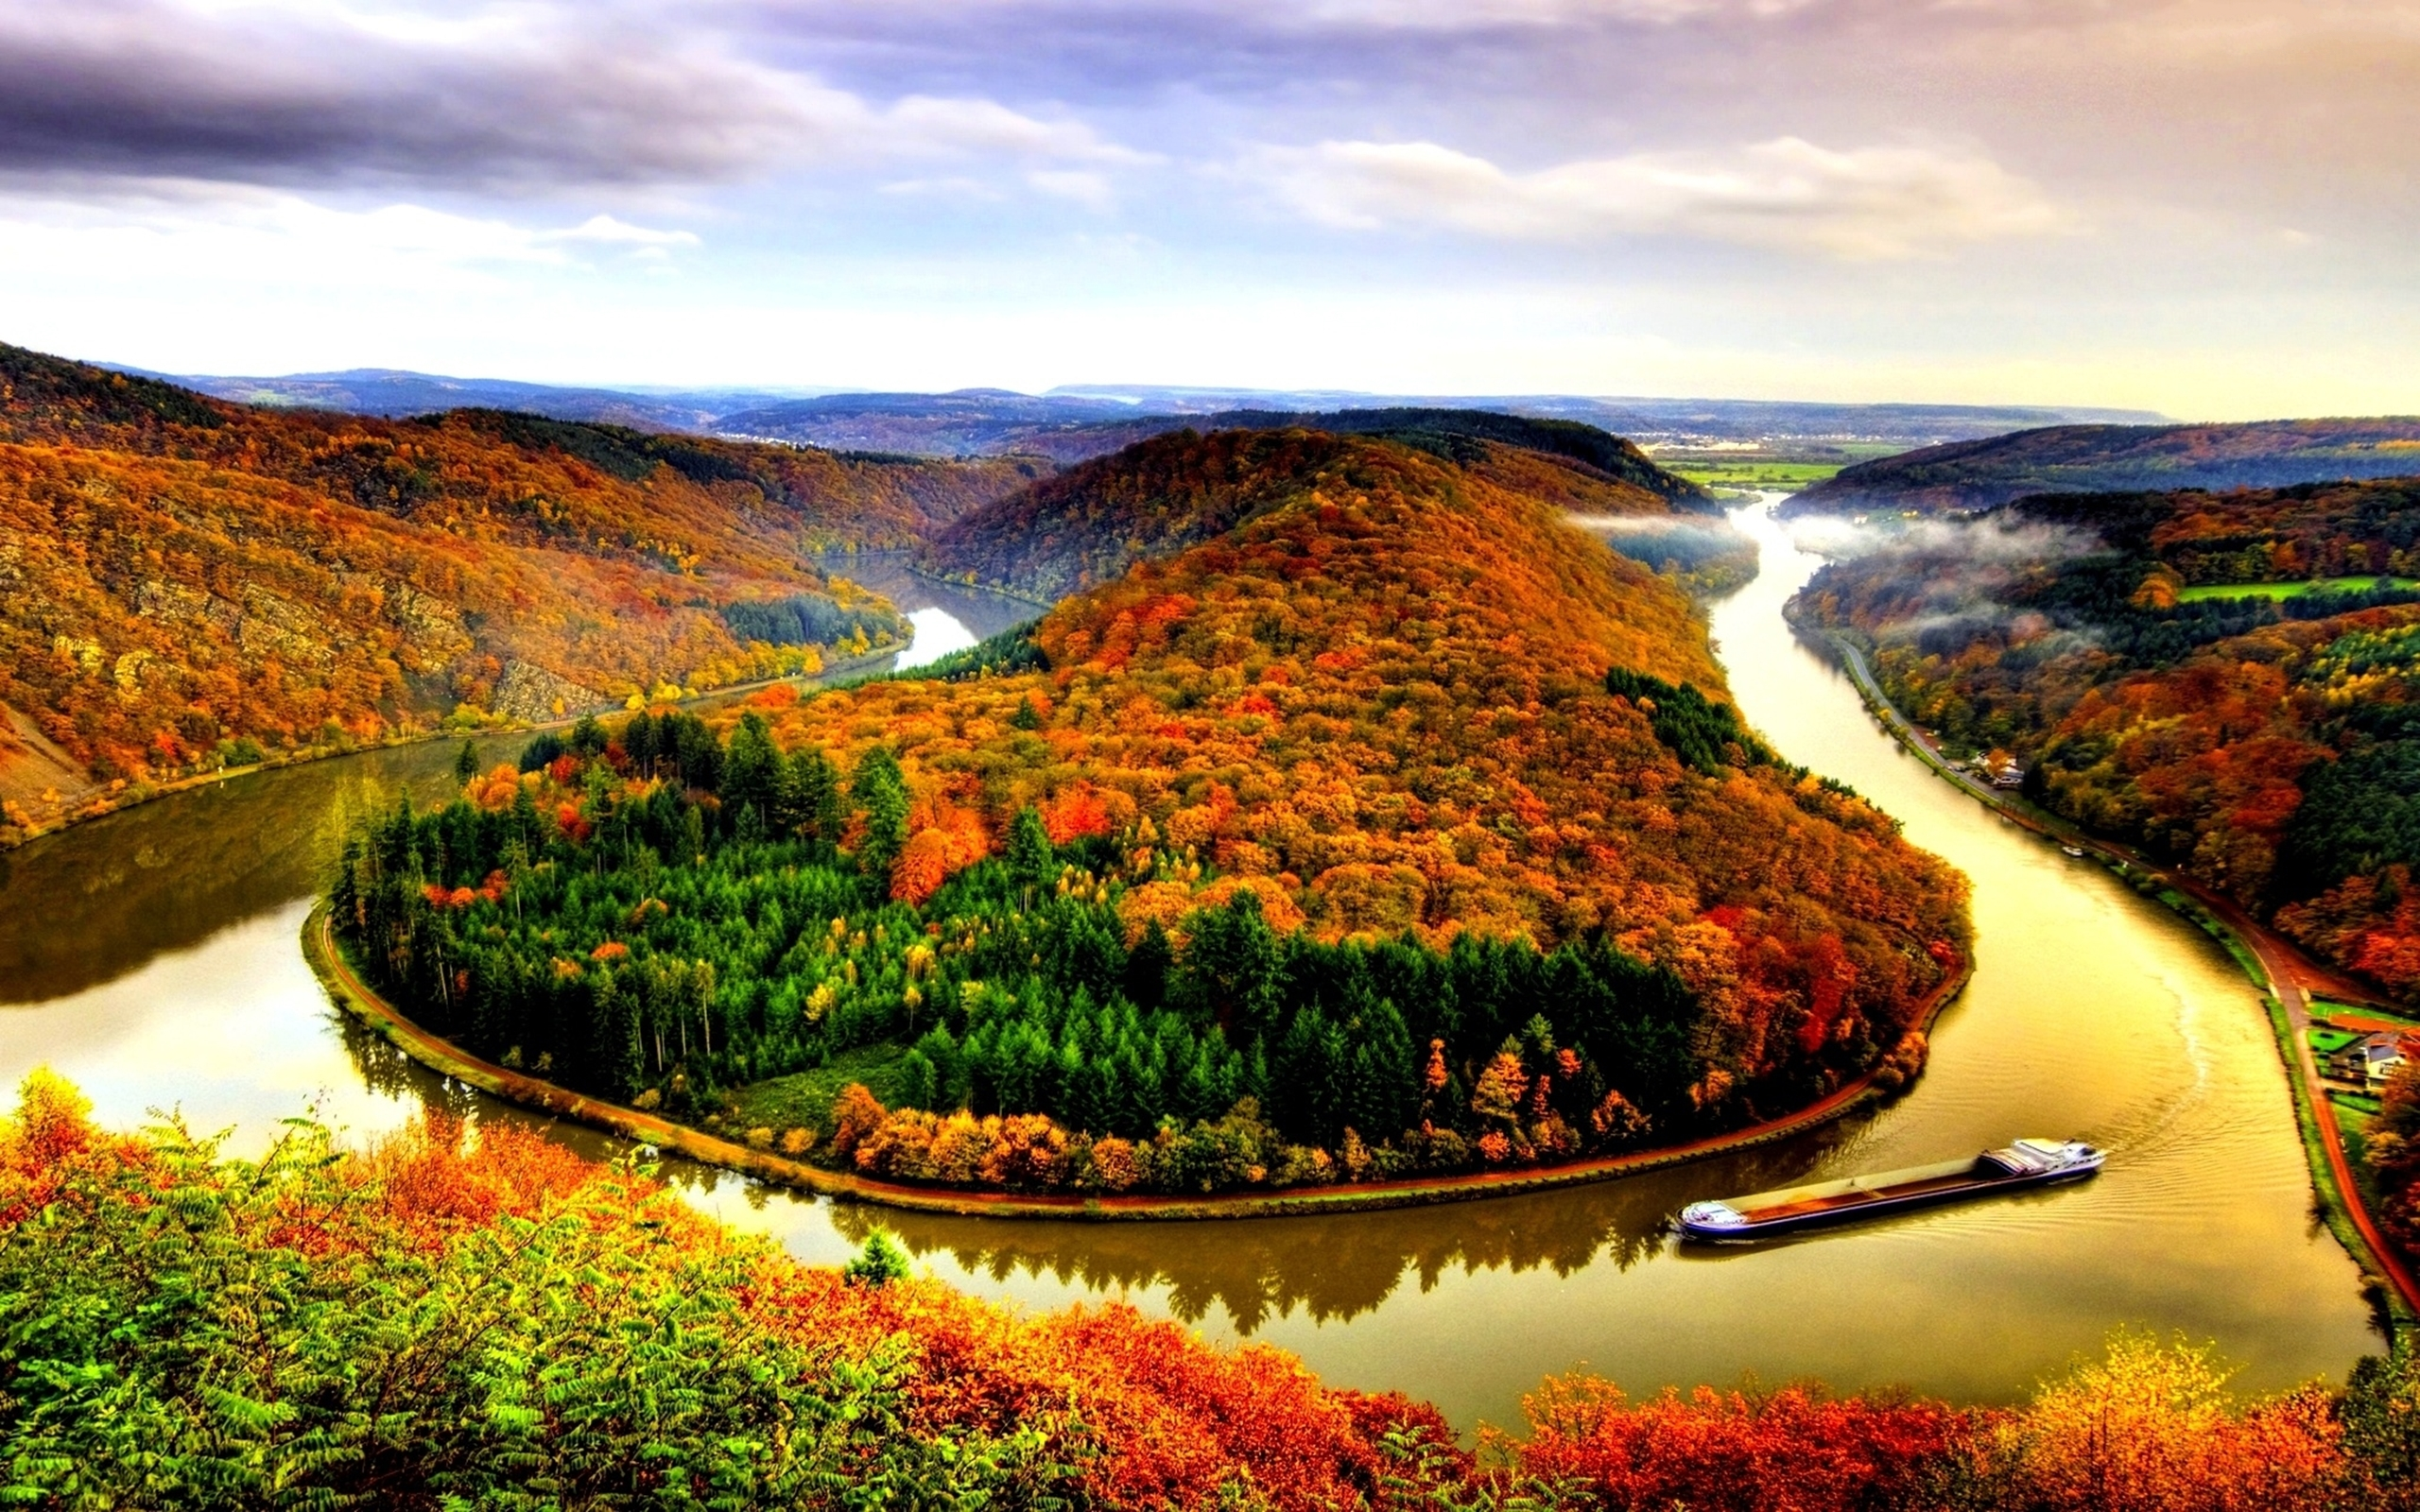 Fall Season Wallpapers Desktop Autumn River Hd Wallpaper Pixelstalk Net